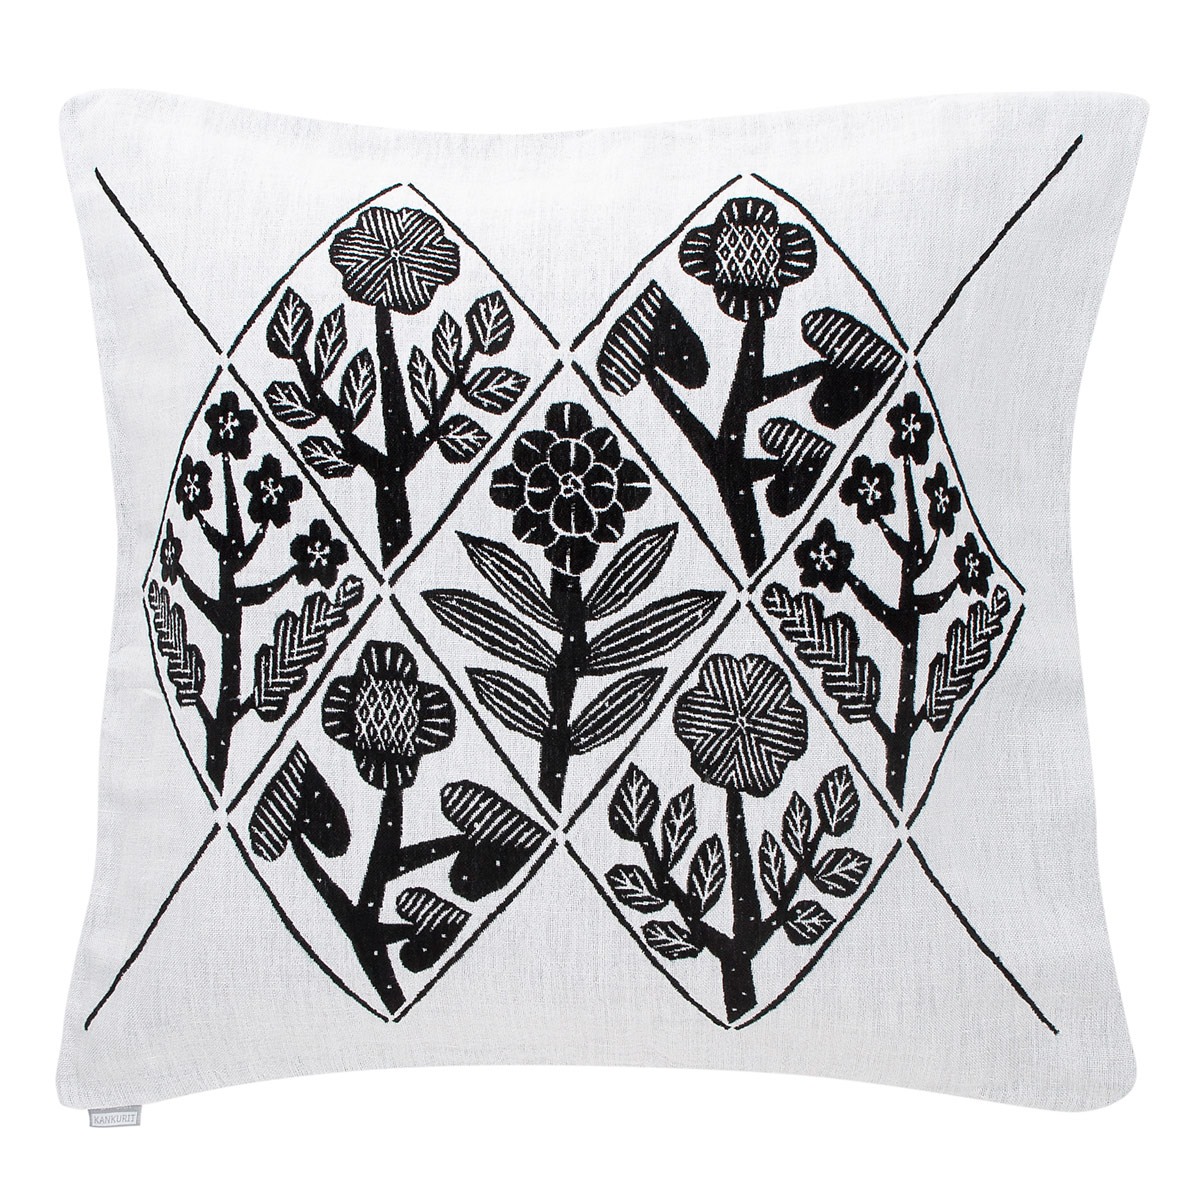 blanket throw cushion gallery black beige pillow white and pillows decorative